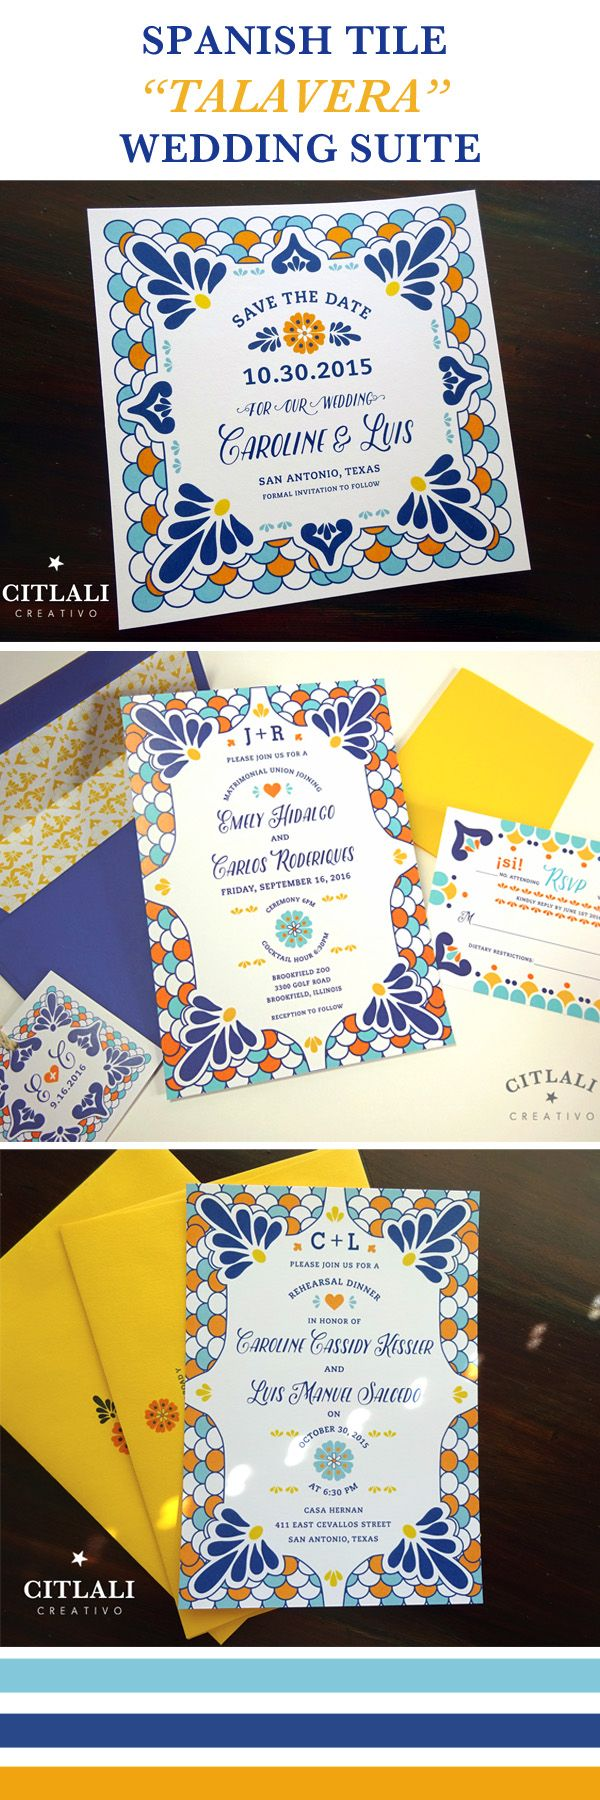 Talavera Wedding Suite - Spanish Tile Invitations & Save the dates - citlalicreativo.com